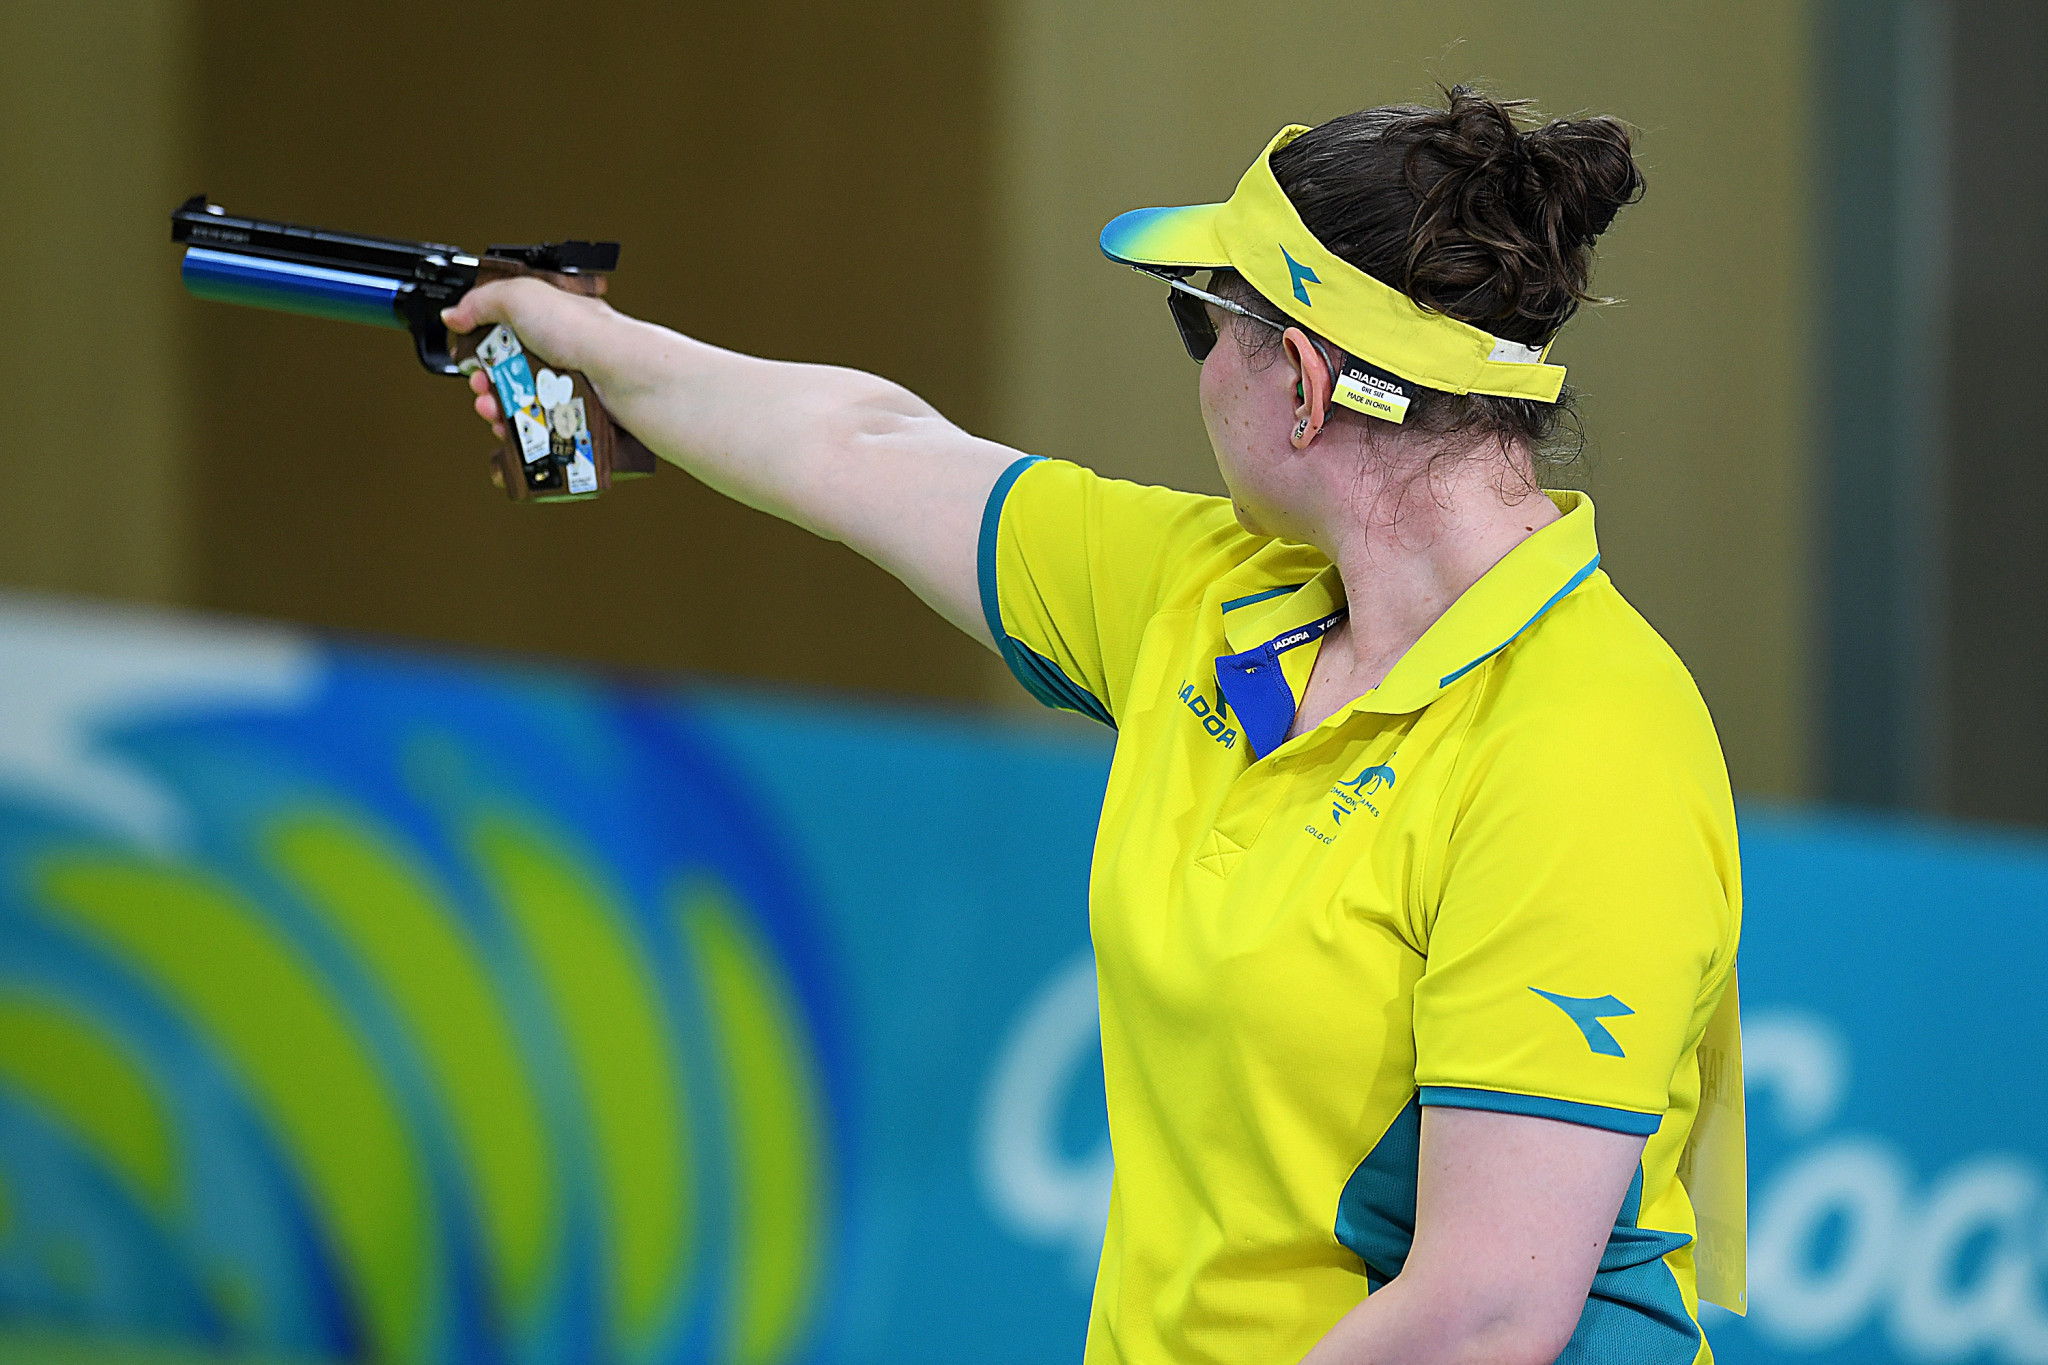 Elena Galiabovitch is among the Australian athletes looking to secure Tokyo 2020 quota positions at the Oceania Shooting Championship in Sydney ©Getty Images